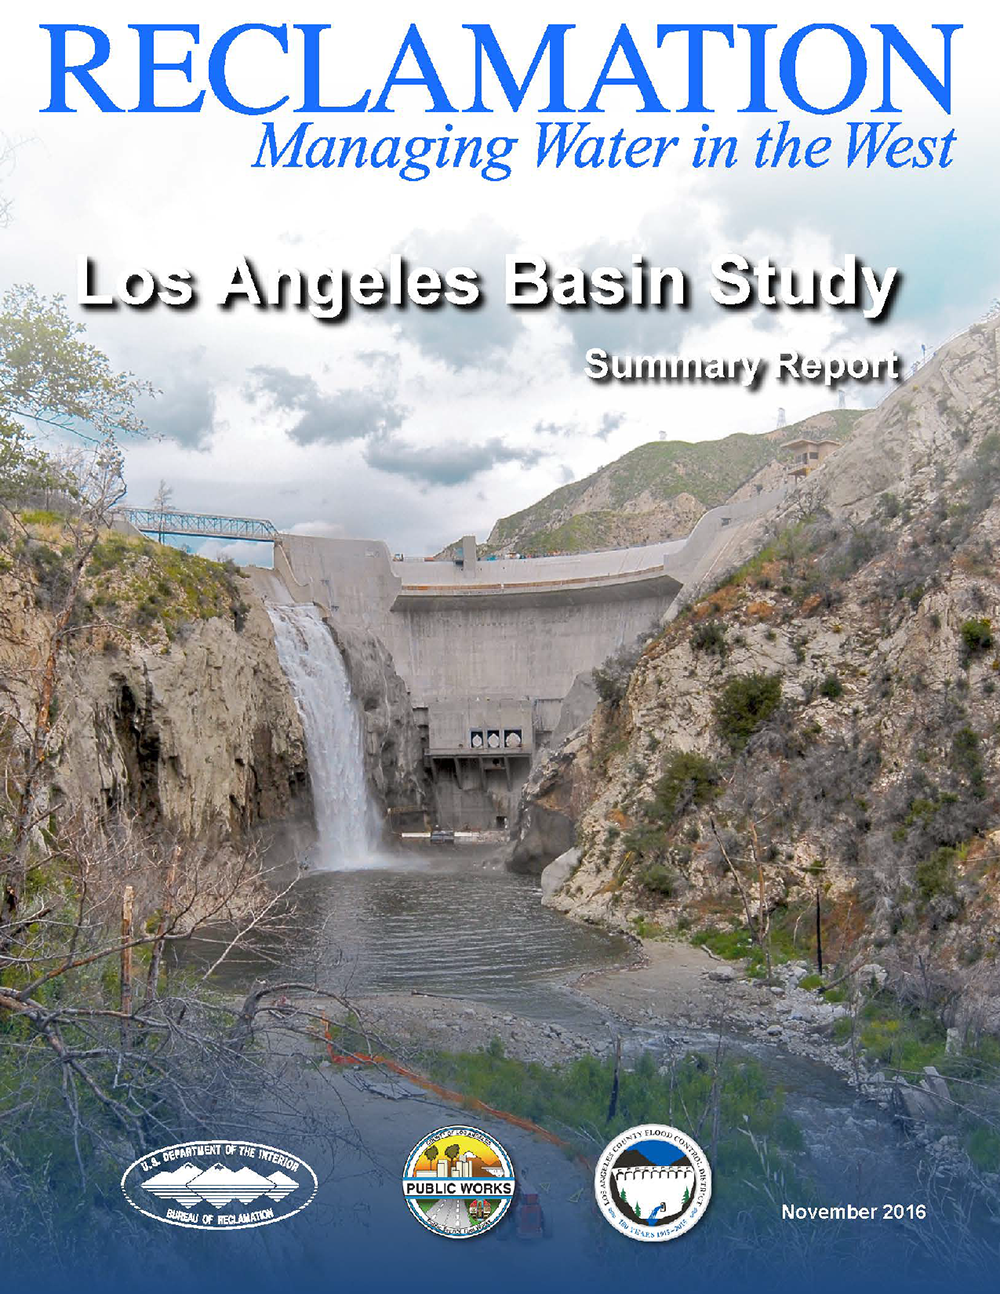 Los Angeles Basin Study